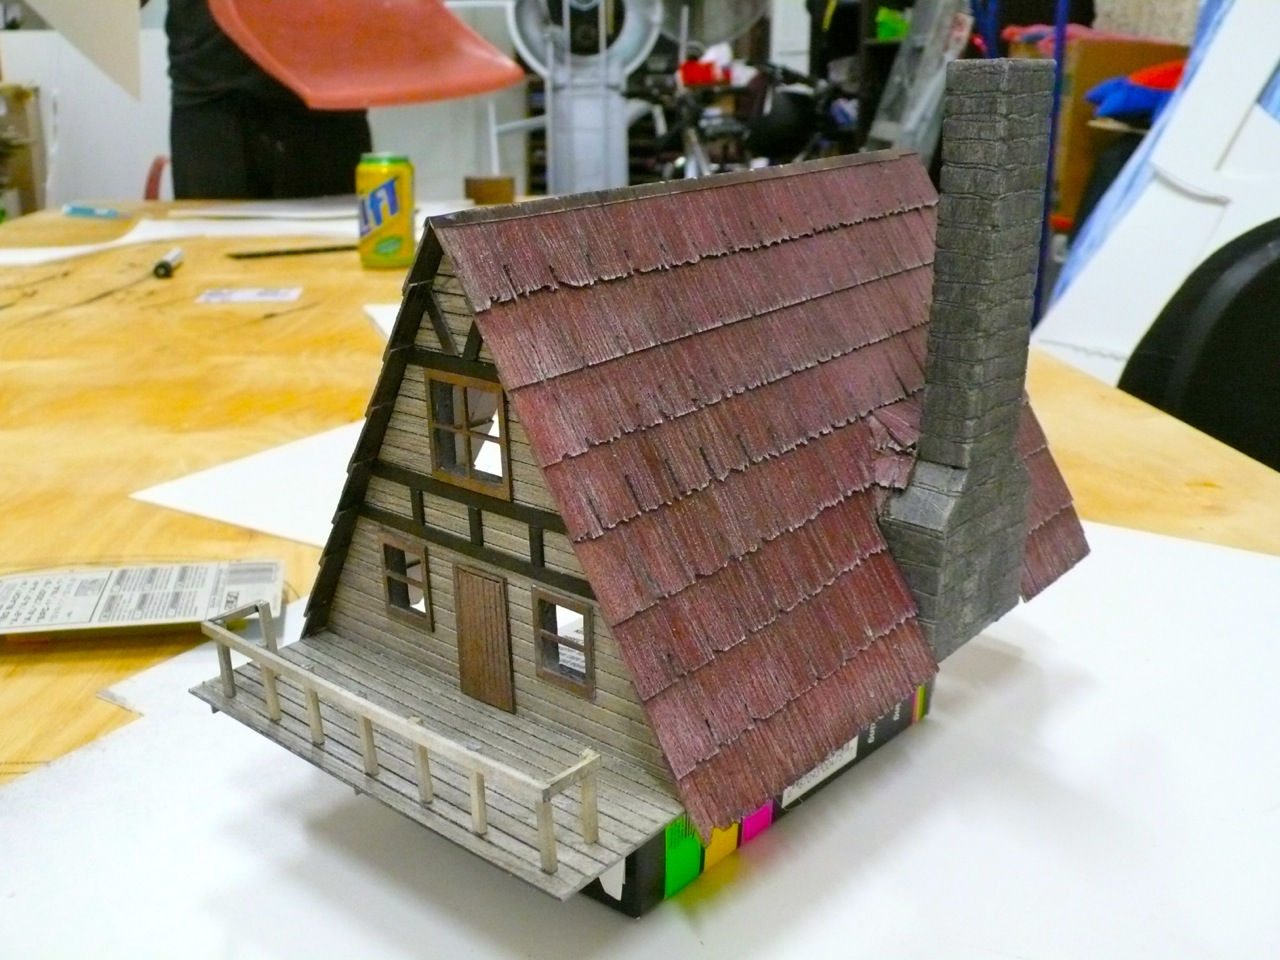 Miniature ski chalet. Made by Lewis Morley Jr.